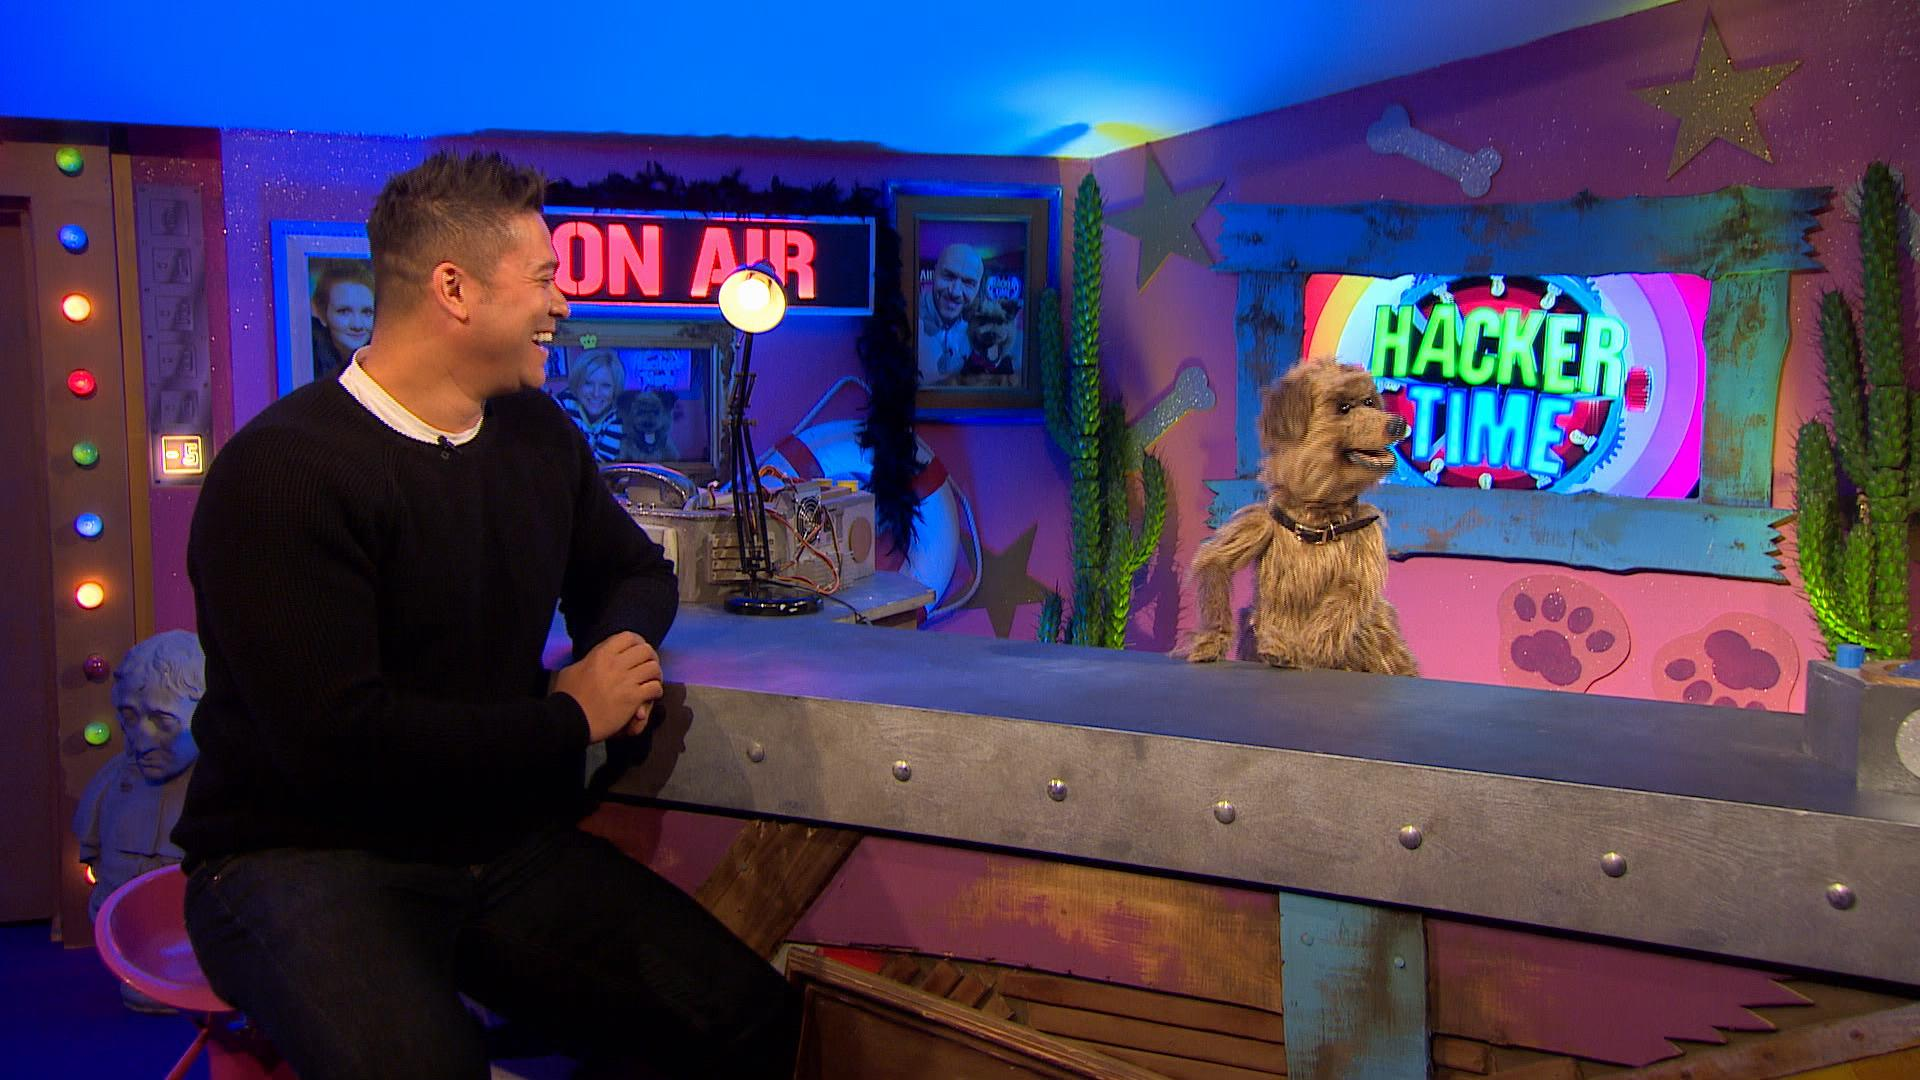 RT @CBBC_Hacker: Watch my top show #HackerTime on @CBBC 9am 2moro with @RavWilding. He has more muscles than the sea. #IKnowHowToSpell http…